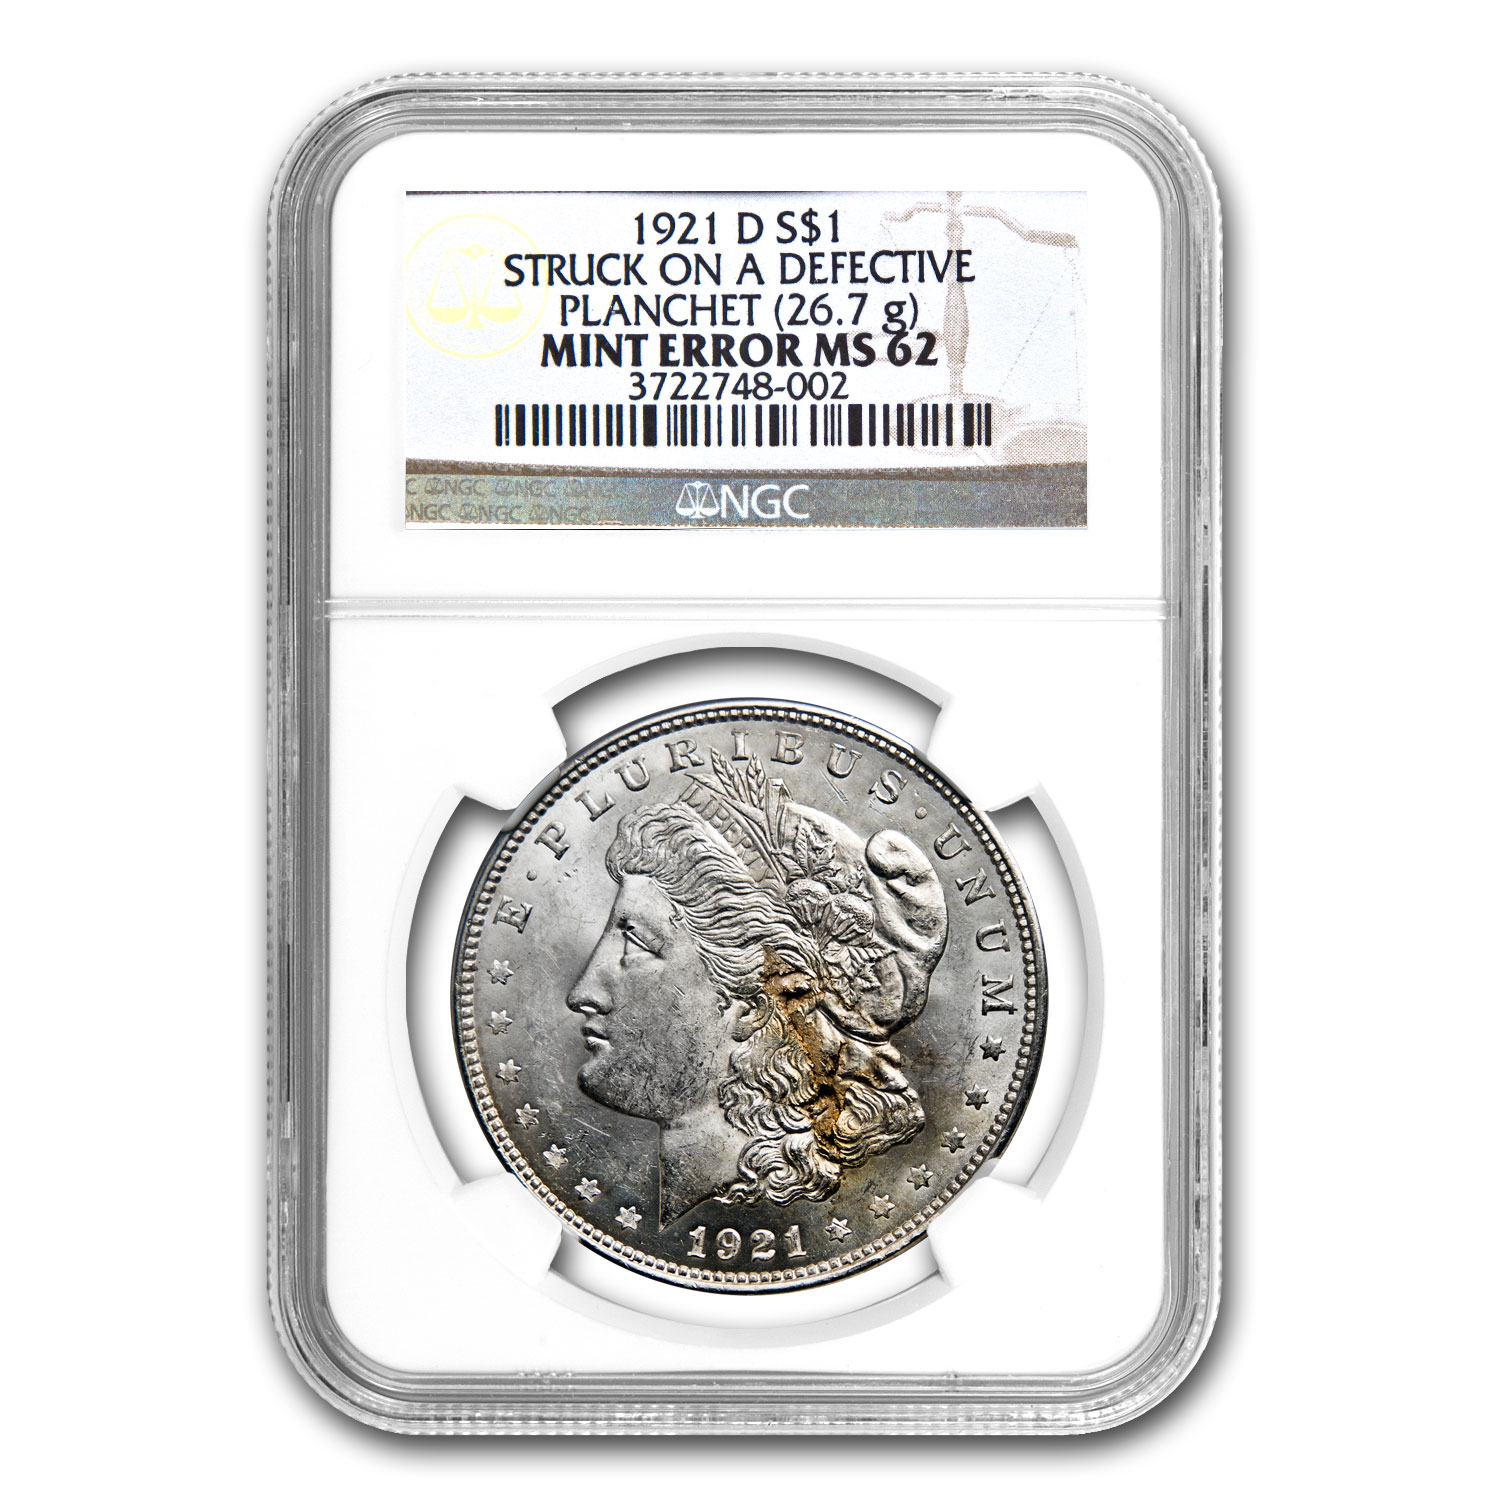 1921-D Morgan Dollar - MS-62 NGC (Defective Planchet Mint Error)